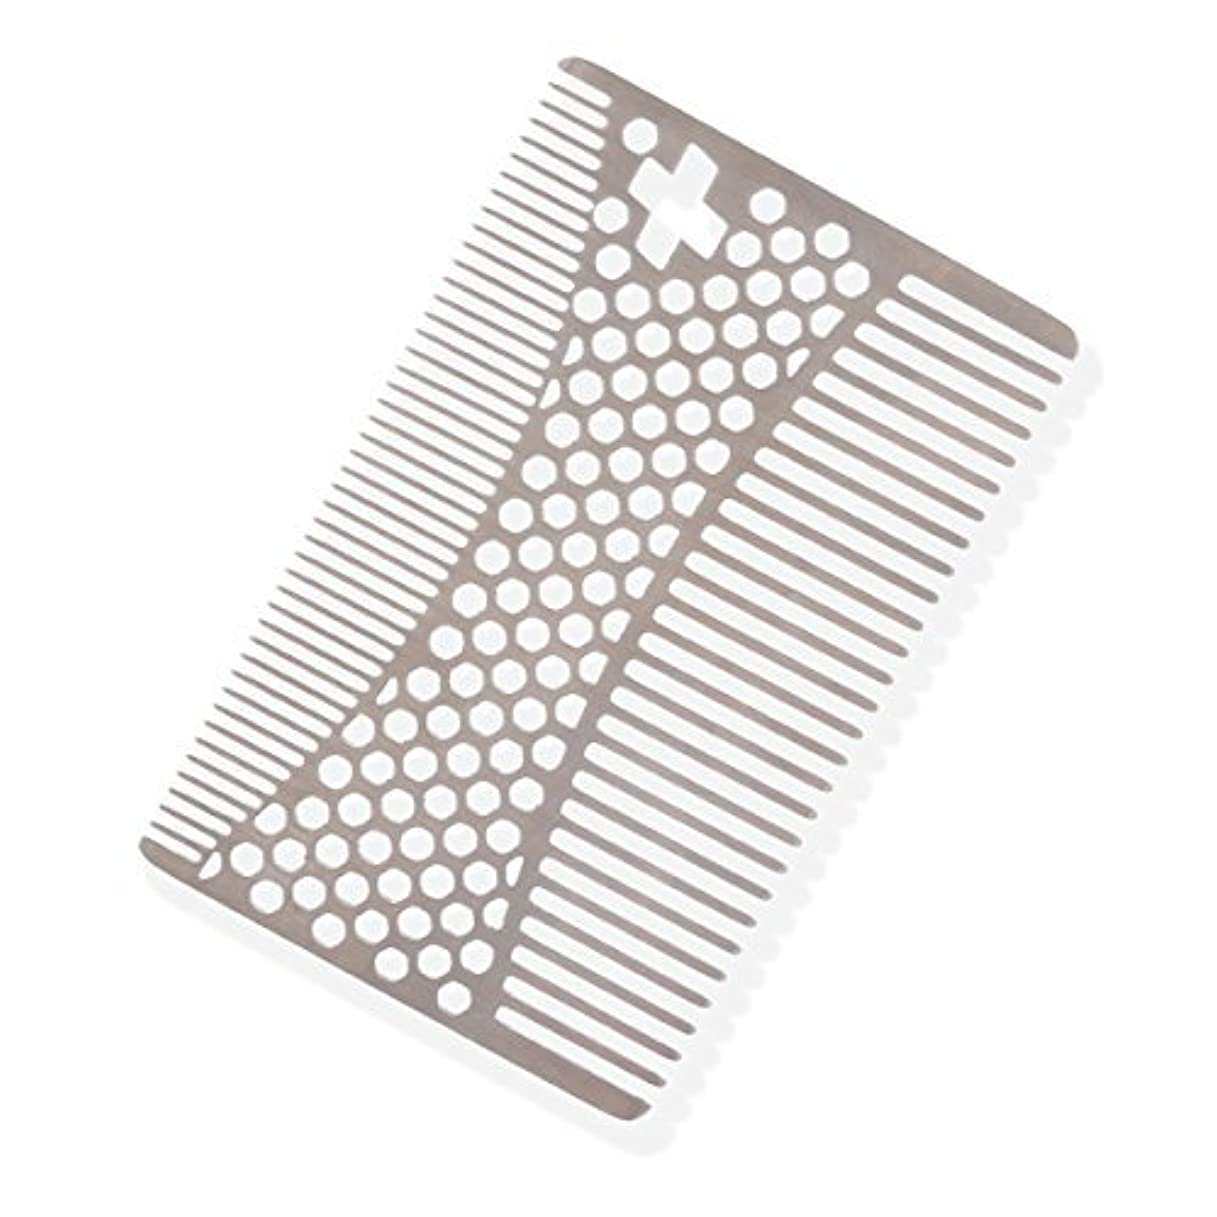 ハント逆さまに精巧なSHARPSWISS Credit Card Pocket Men Hair and Beard Comb Short - Stainless Steel [並行輸入品]